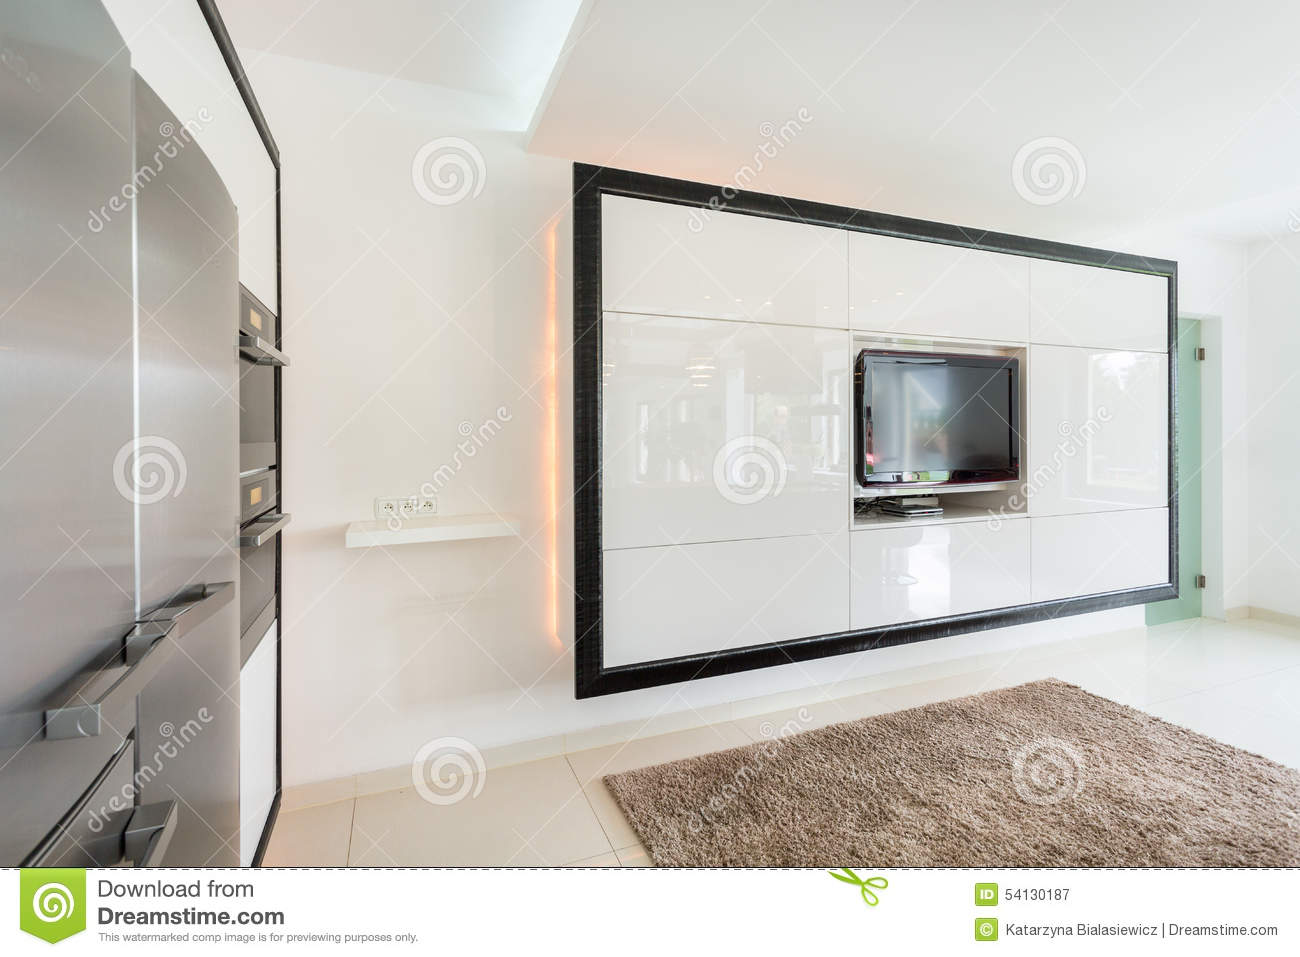 Huge TV On The Wall In Living Room Stock Image - Image of lifestyle ...